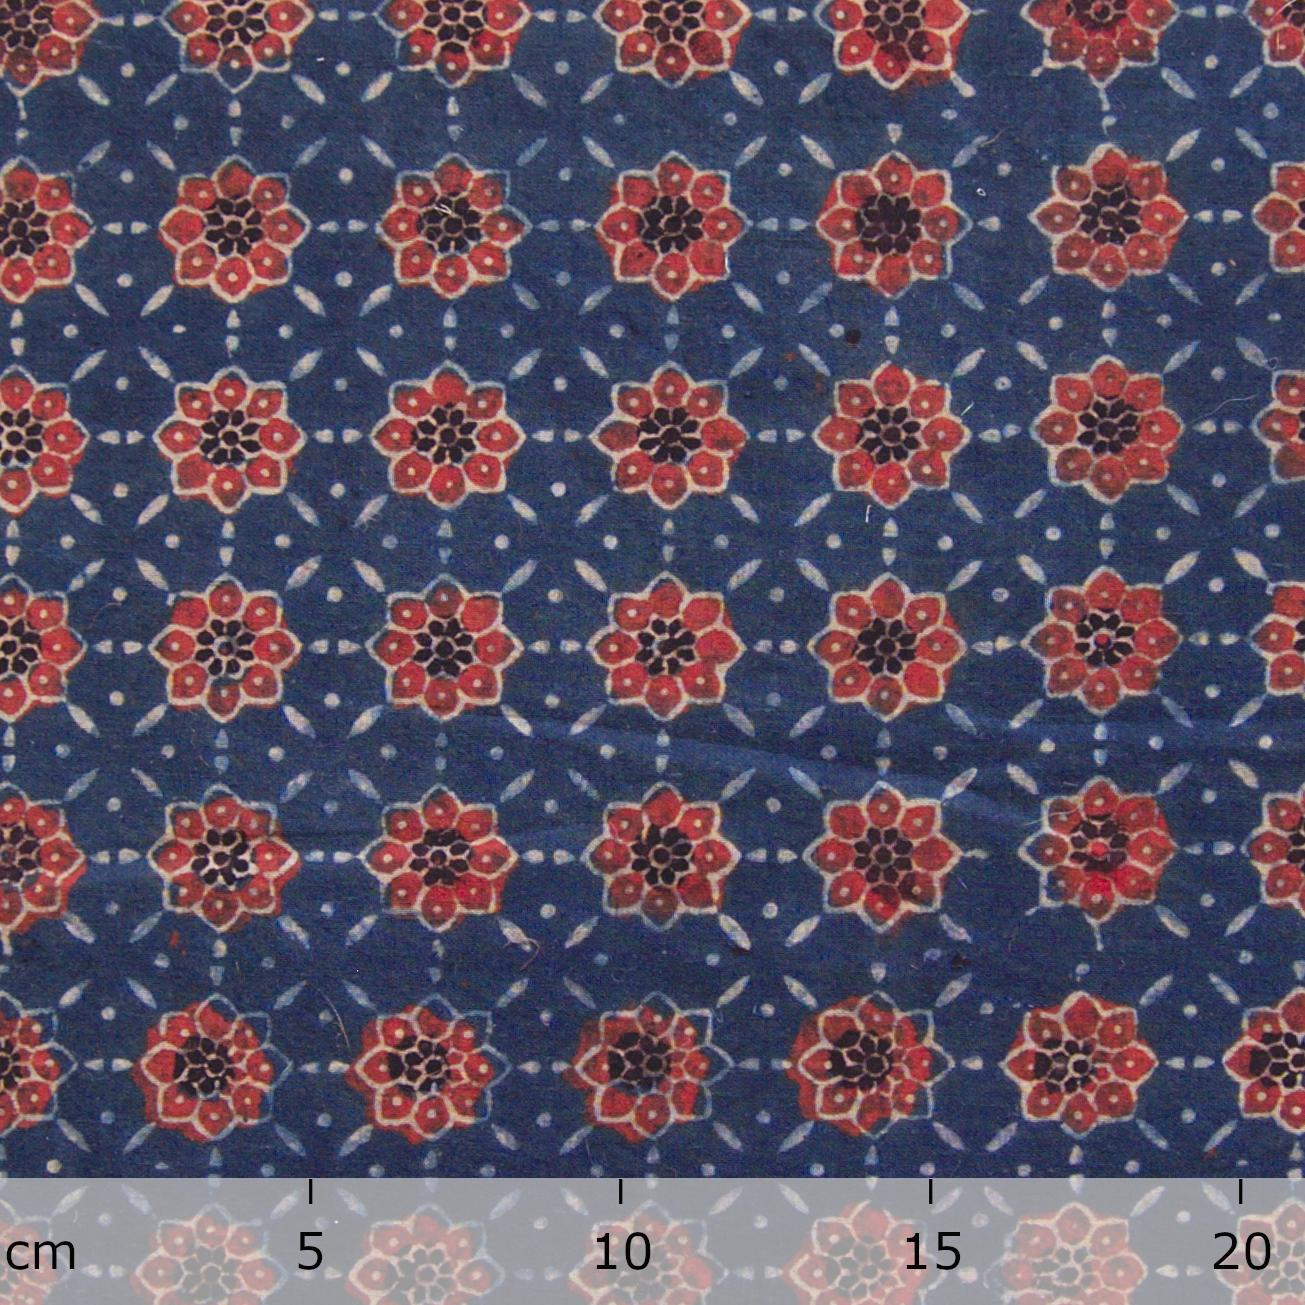 Block Printed Fabric, Cotton, Ajrak Design: Indigo Blue Base, Madder Red Flower. Ruler